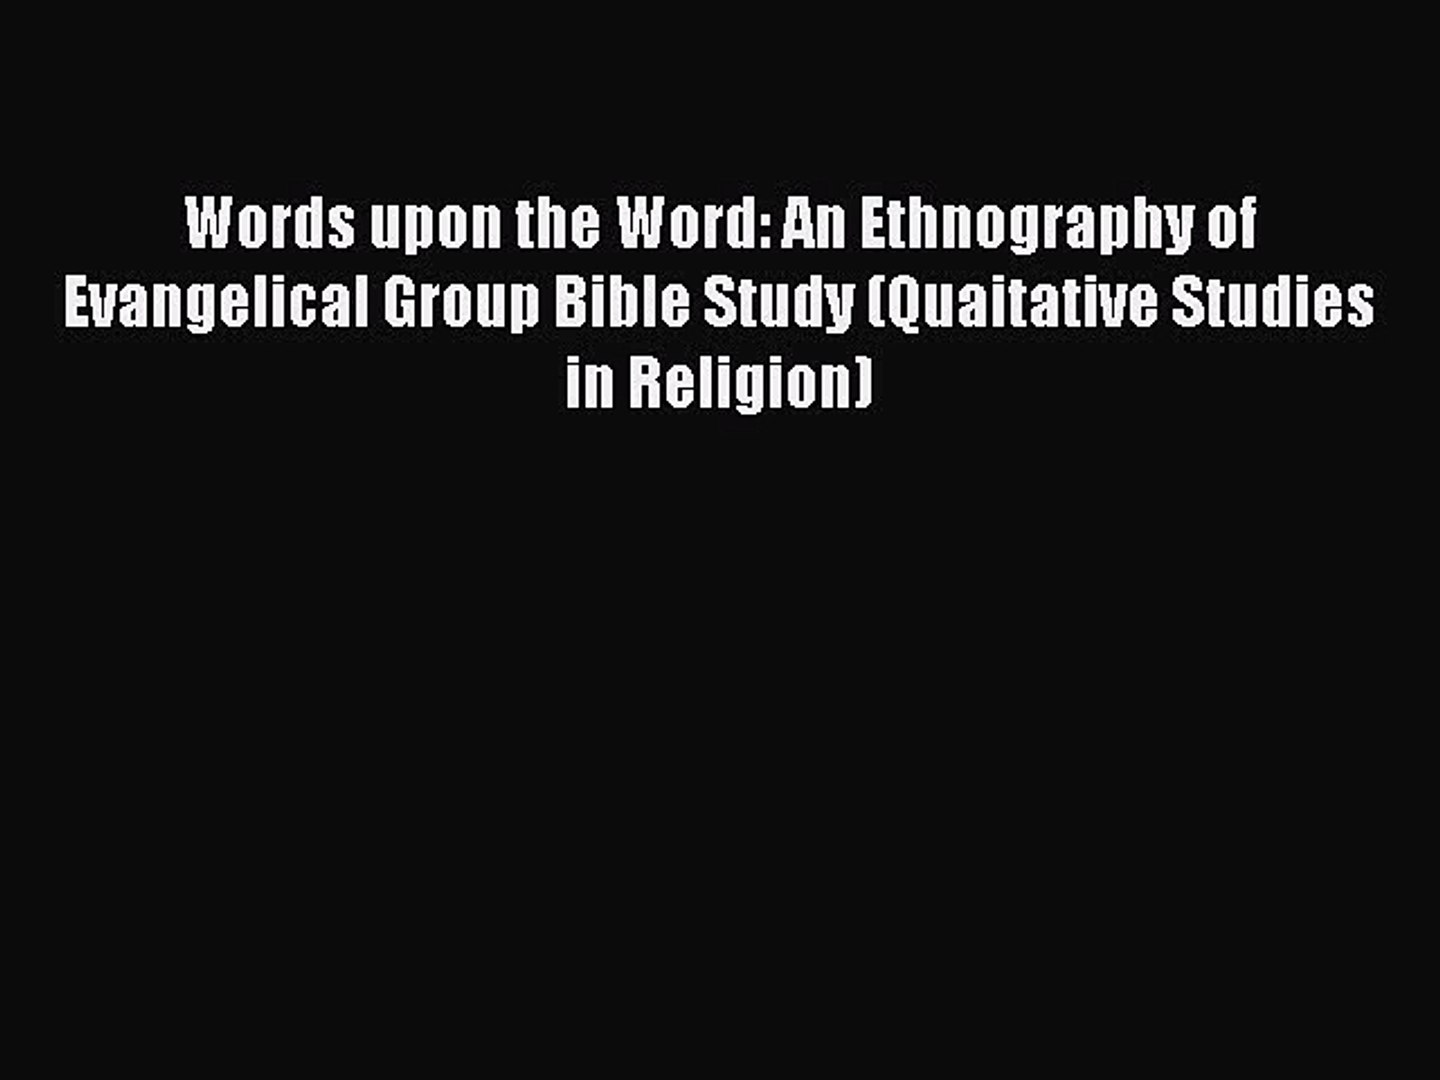 Words upon the Word: An Ethnography of Evangelical Group Bible Study  (Quaitative Studies in